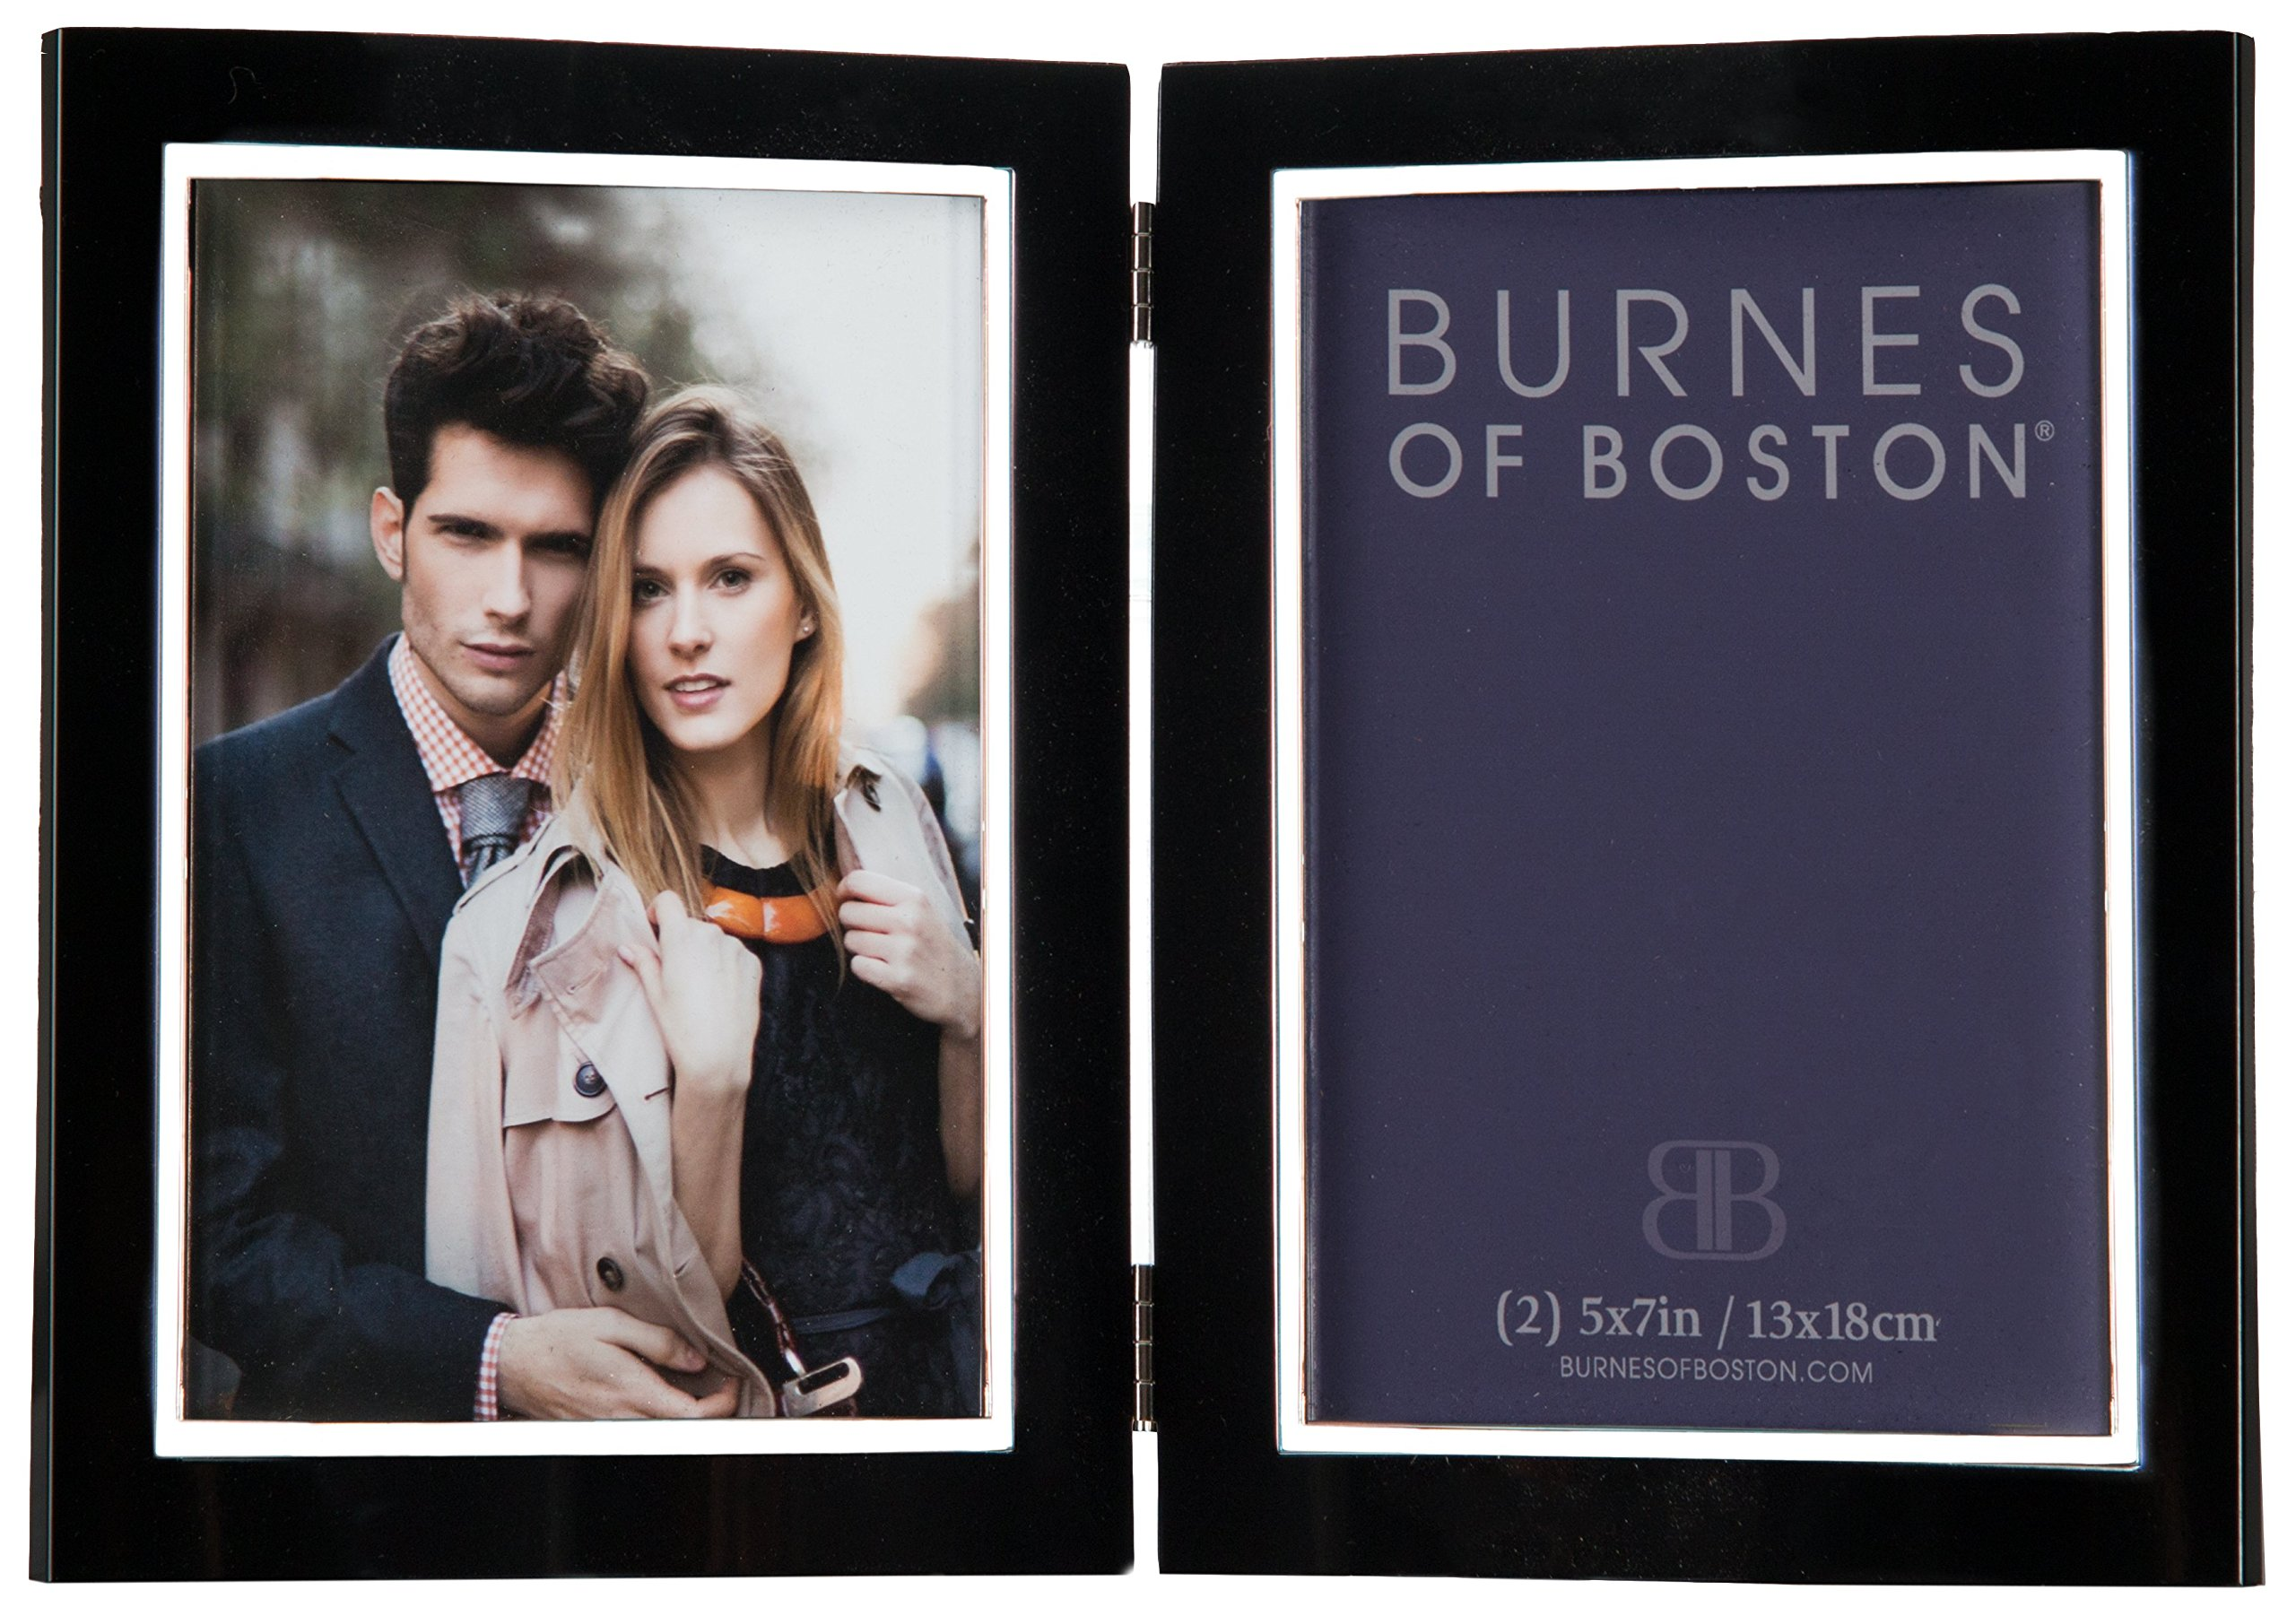 Burnes of Boston 163257 City Lights Double Hinged Picture Frame, Black, 5 by 7 Inches